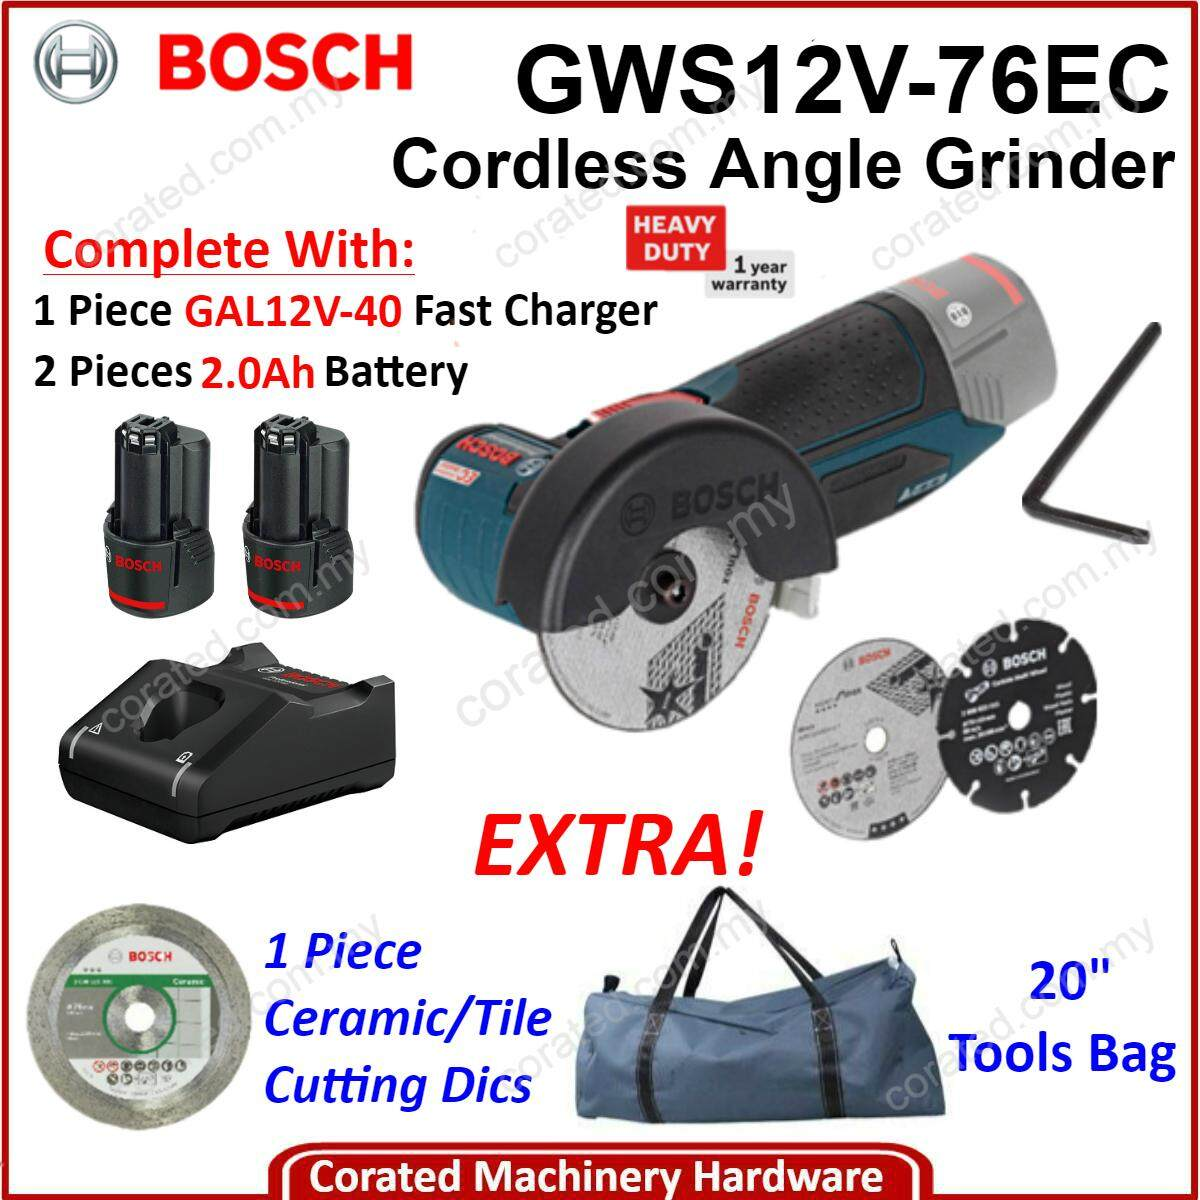 [corated]bosch Gws12-76v-Ec 76mm 12v Cordless Angle Grinder C/w 1pc Charger, 2pc 2.0a.h Battery,1pc 20 Tools Bag Gws 12-76v-Ec Gws 12-76v- Ec Gws 12- 76v- Ec By Corated Enterprises (m) Sdn Bhd.